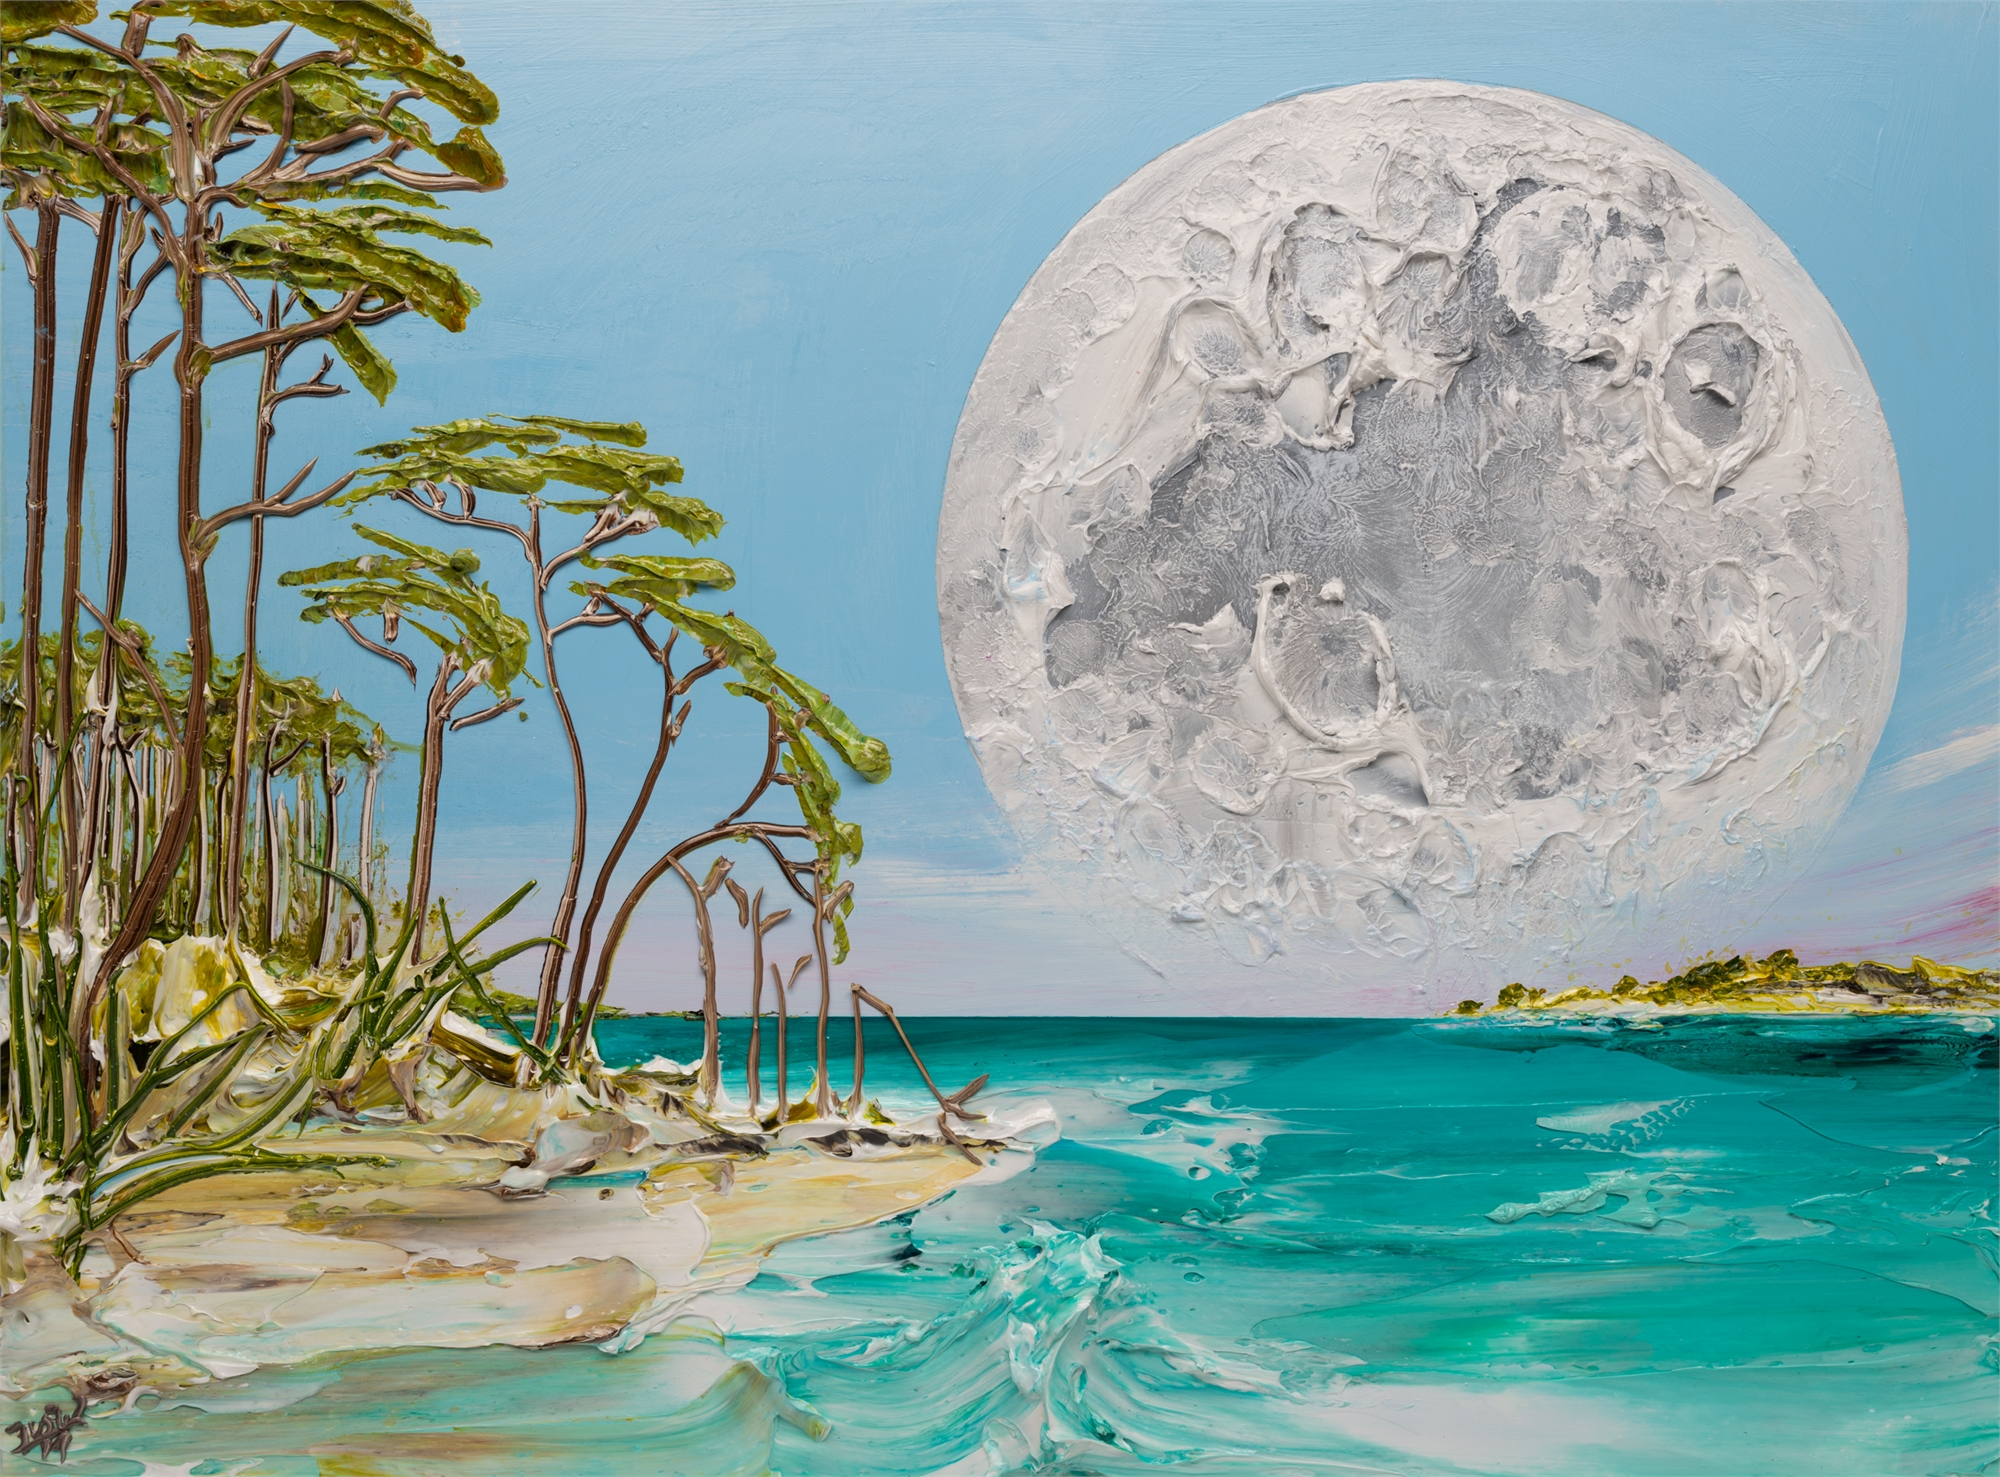 MOONSCAPE MS-40x30-2019-306 by JUSTIN GAFFREY